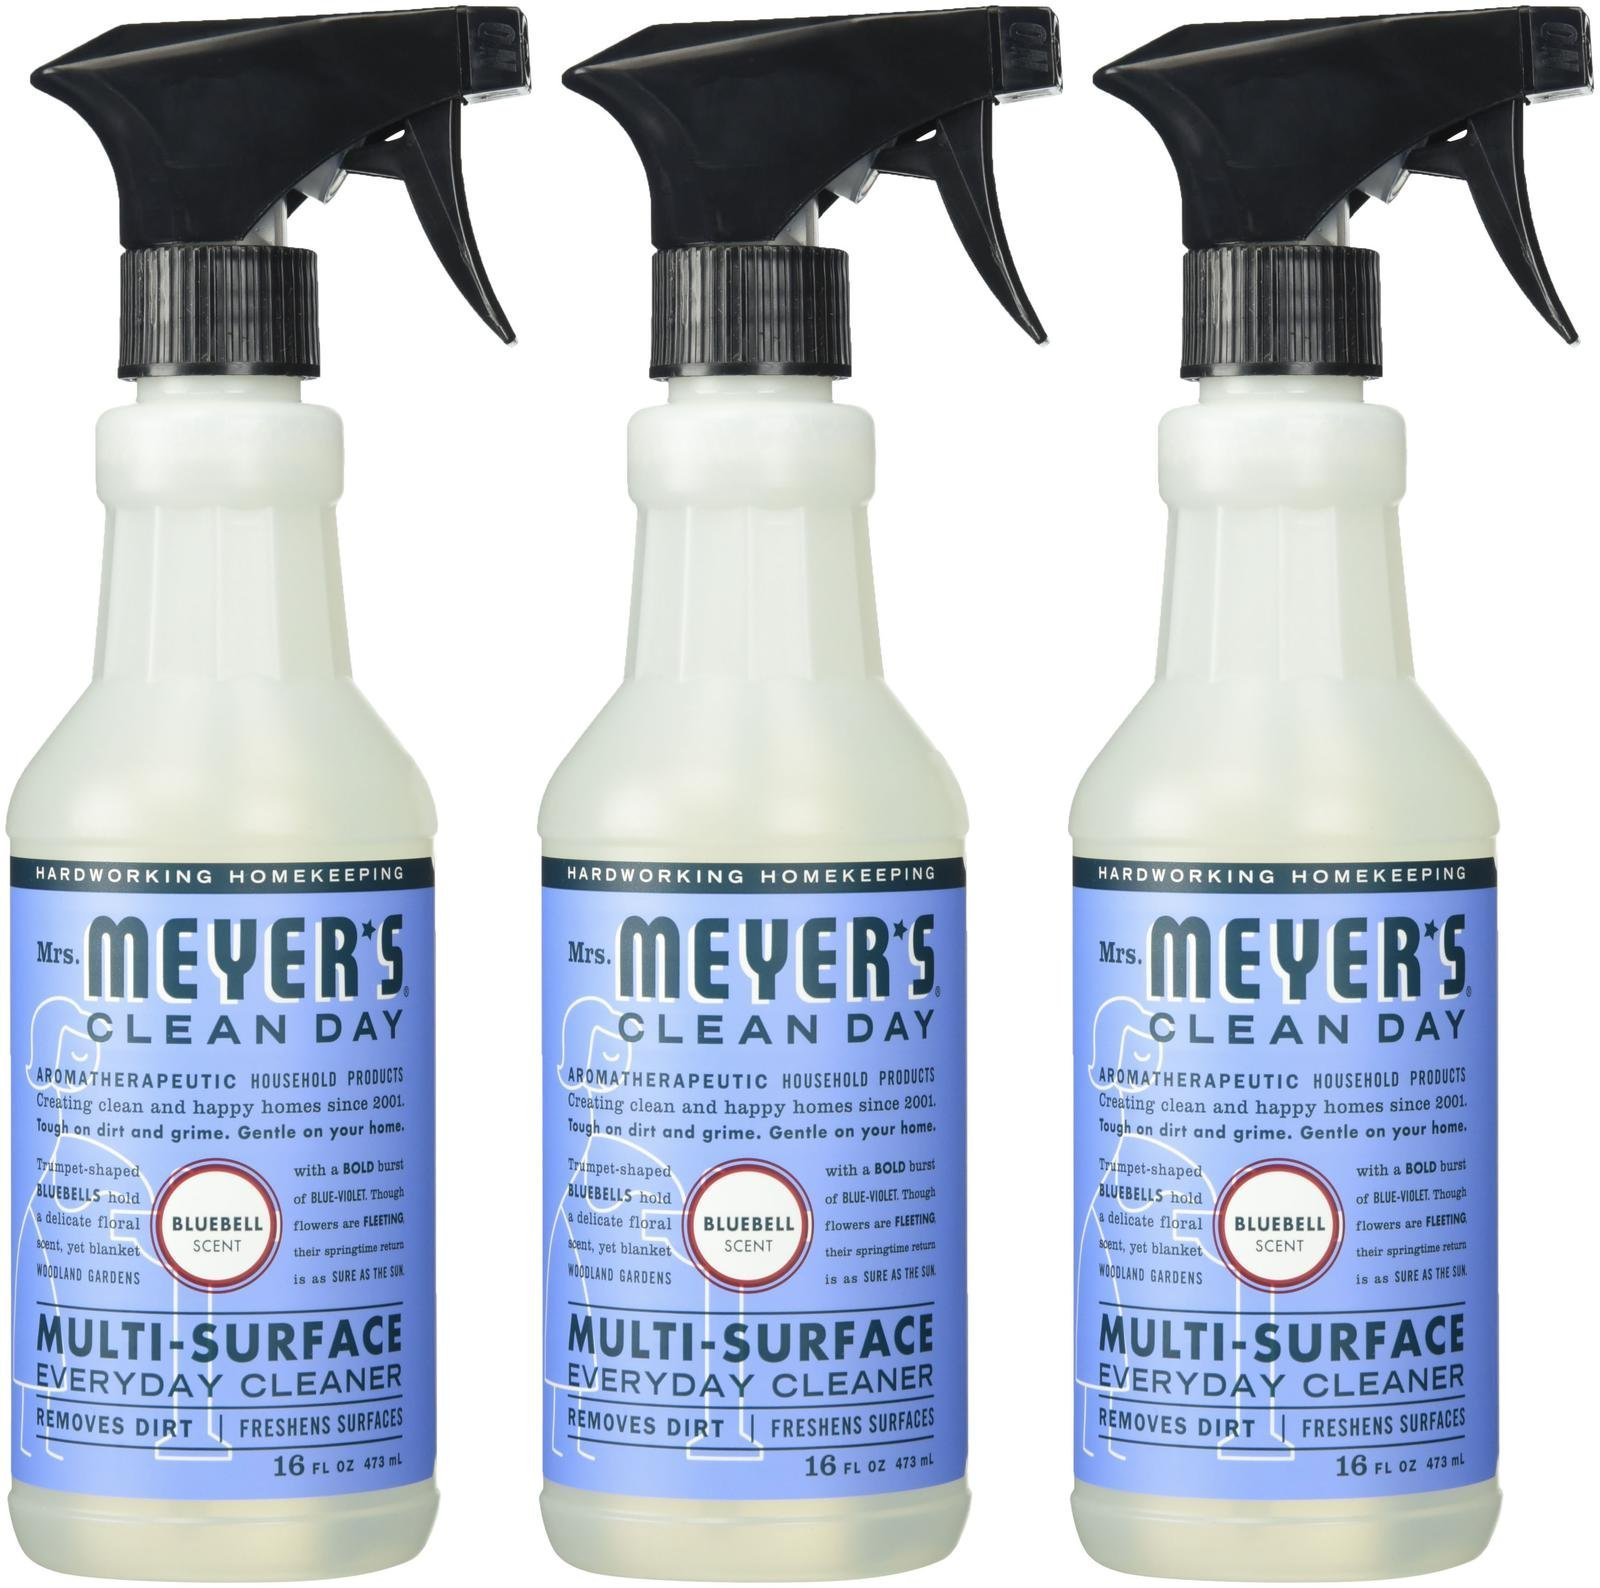 Mrs. Meyer's Clean Day Multi-Surface Everyday Cleaner - 16 oz - Bluebell - 3 Pack by Mrs. Meyer's Clean Day